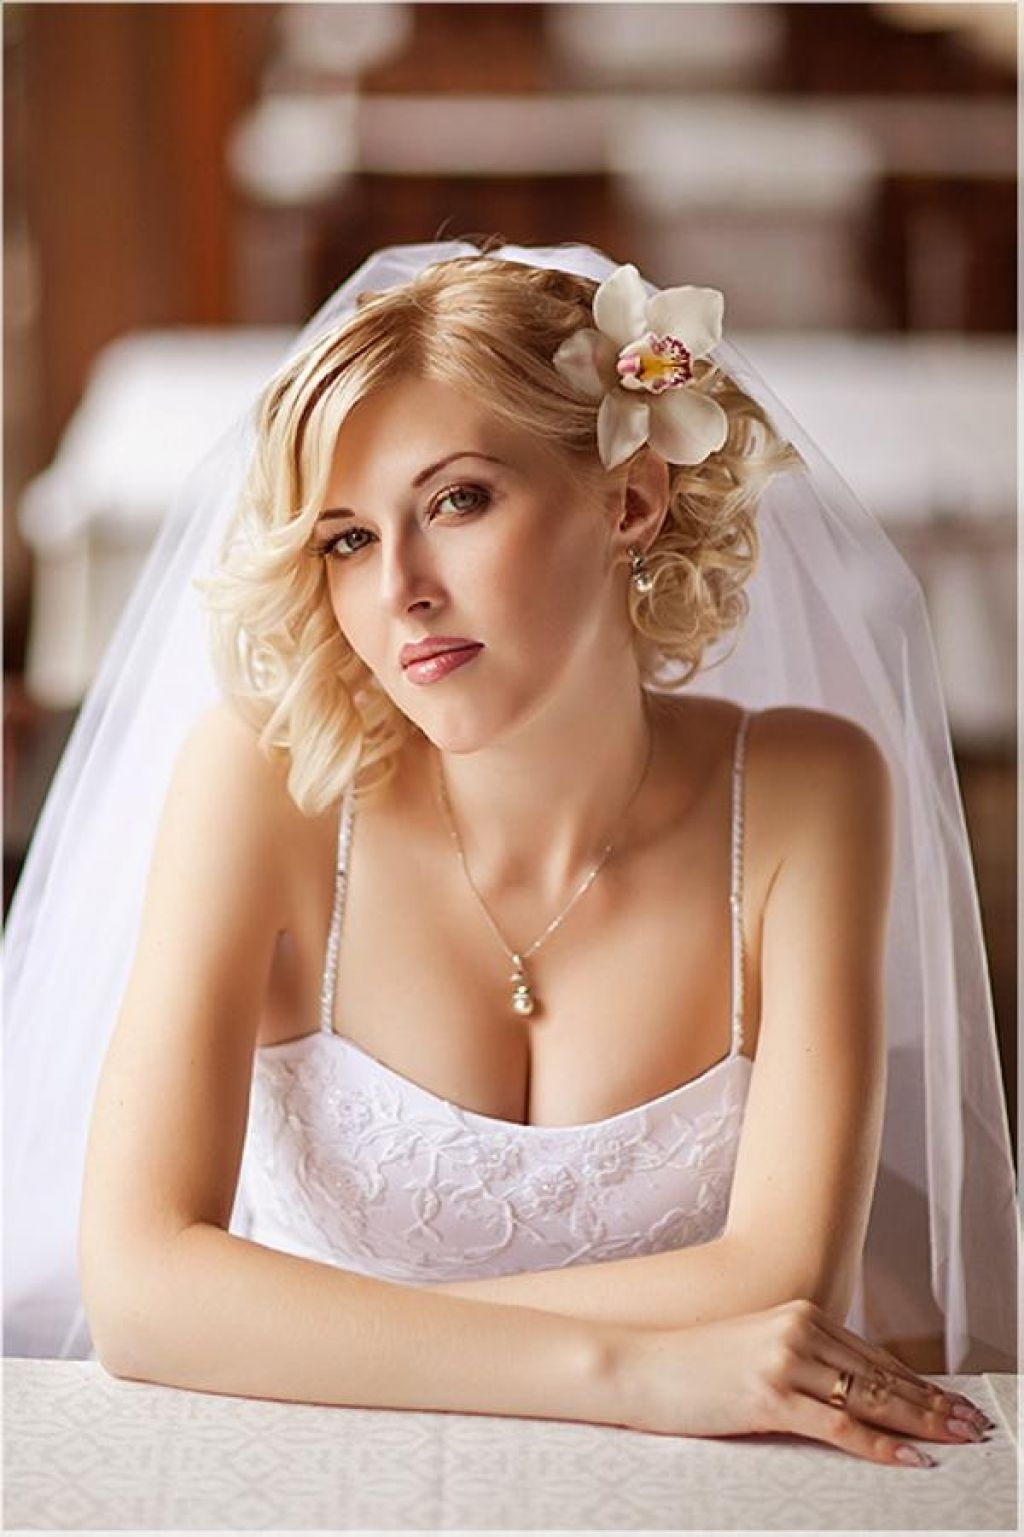 Bob Wedding Hairstyles – Hairstyles Inspiration Pertaining To 2017 Bob Wedding Hairstyles (View 10 of 15)